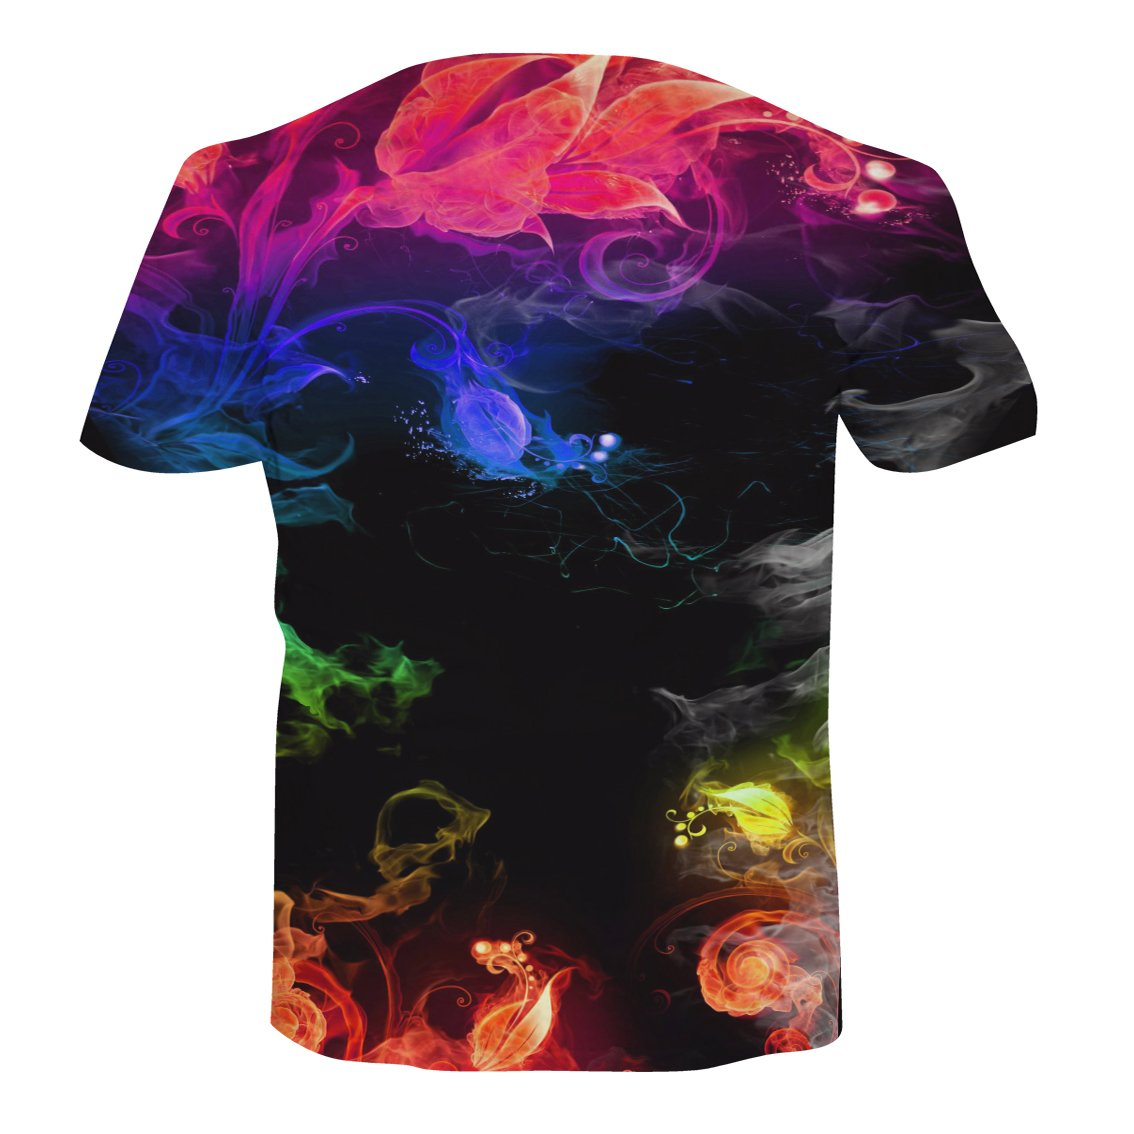 NEWISTAR Unisex Youth 3D Print Graphic Casual Short Sleeve T-Shirt Tees